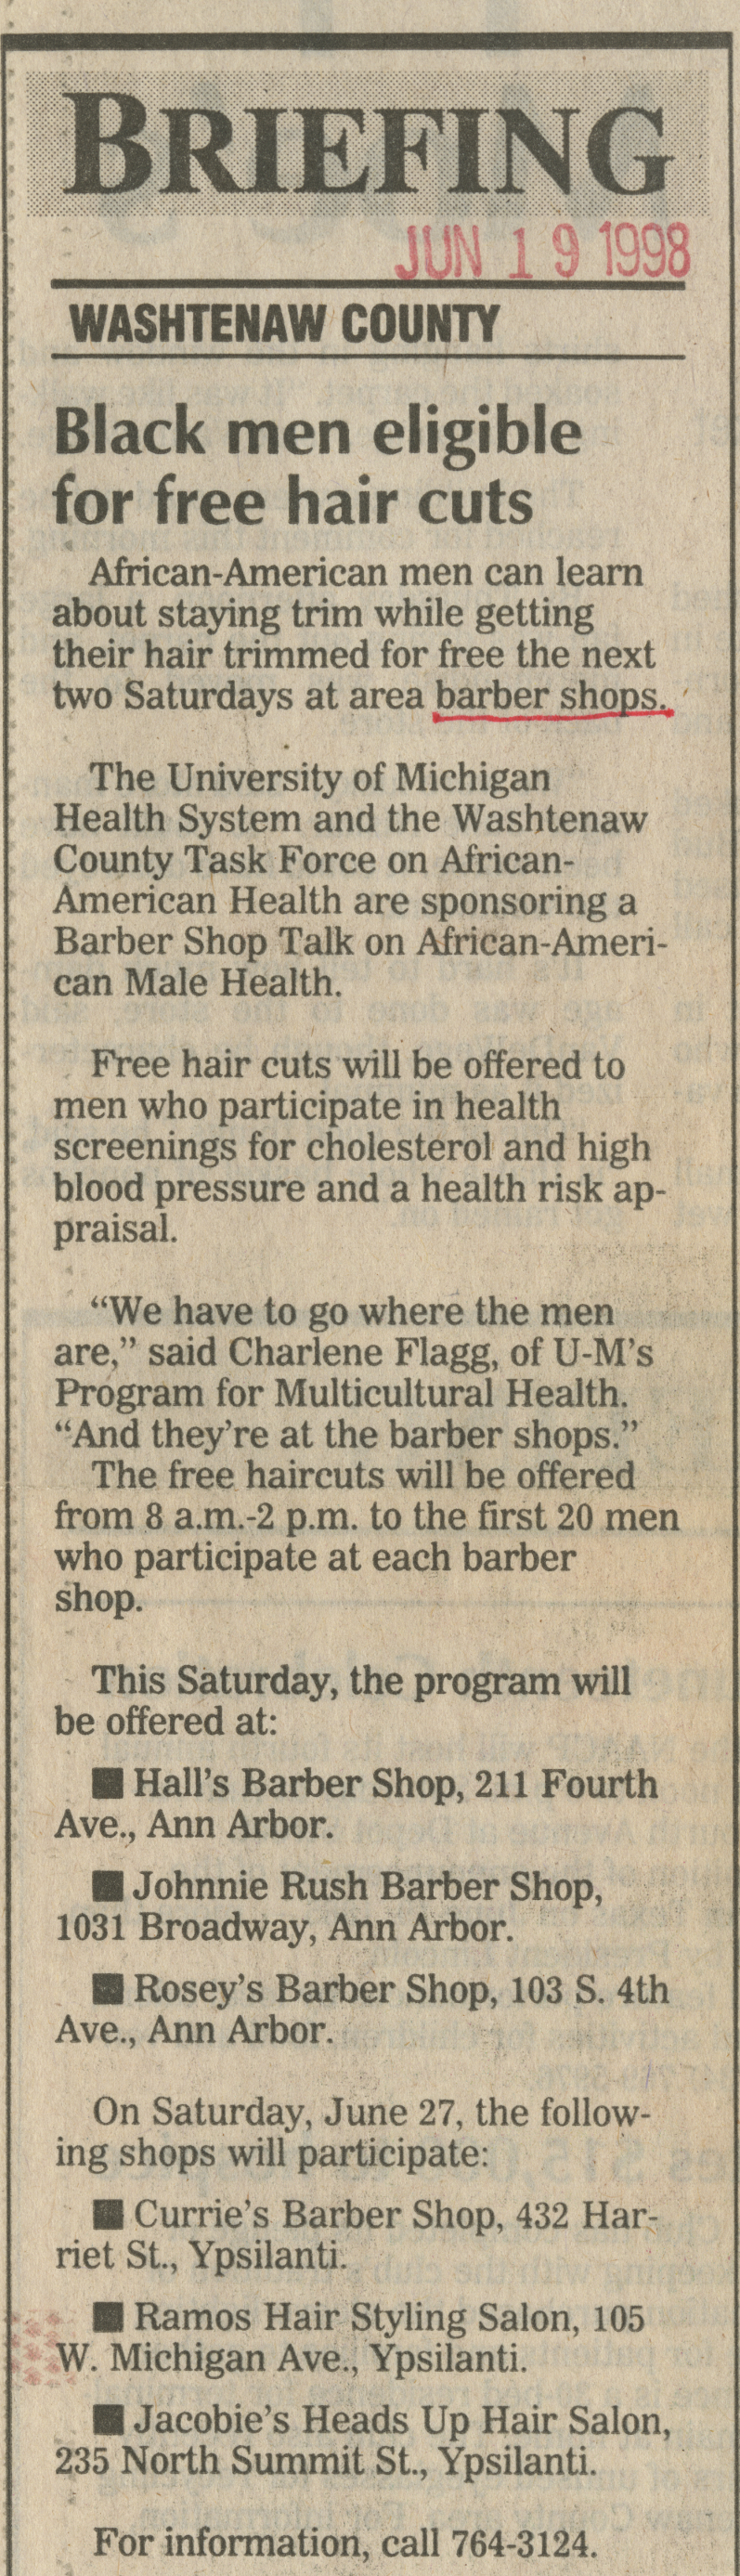 Black men eligible for free hair cuts image